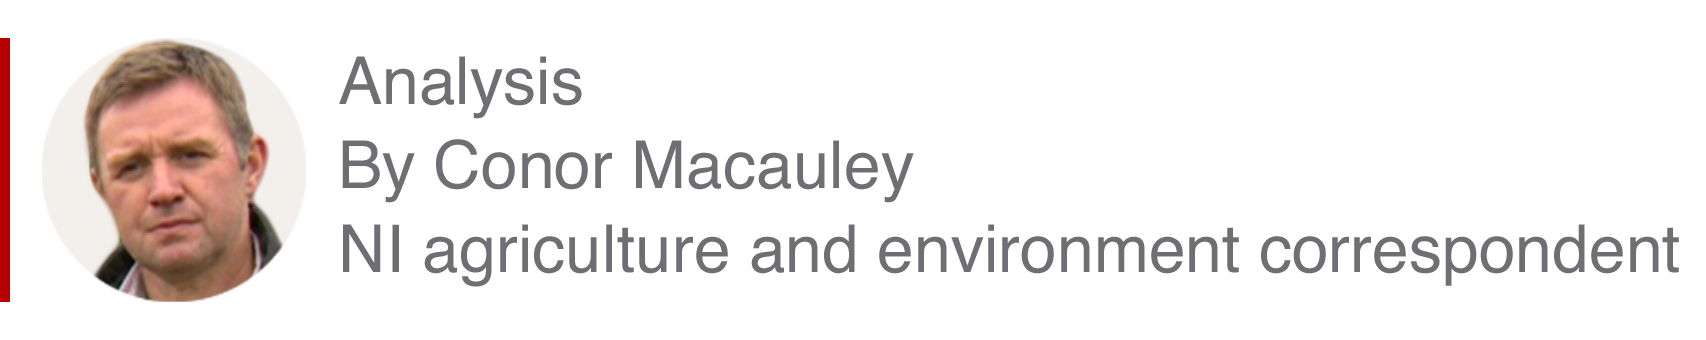 Analysis box by Conor Macauley, NI agriculture and environment correspondent